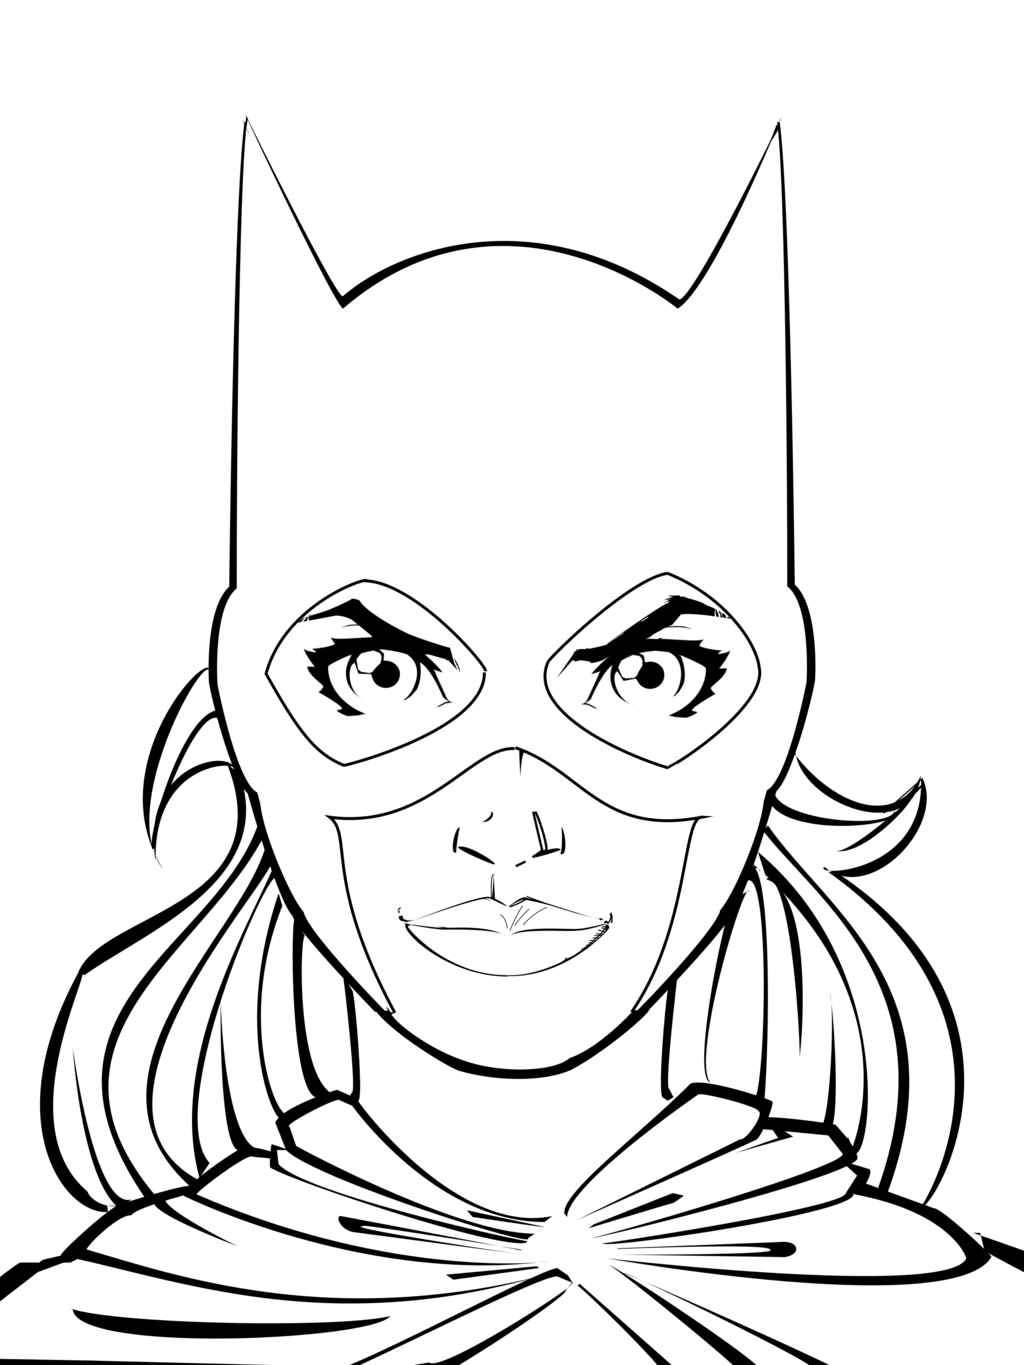 Batgirl Coloring Pages Cartoon Coloring Pages Superhero Coloring Superhero Coloring Pages